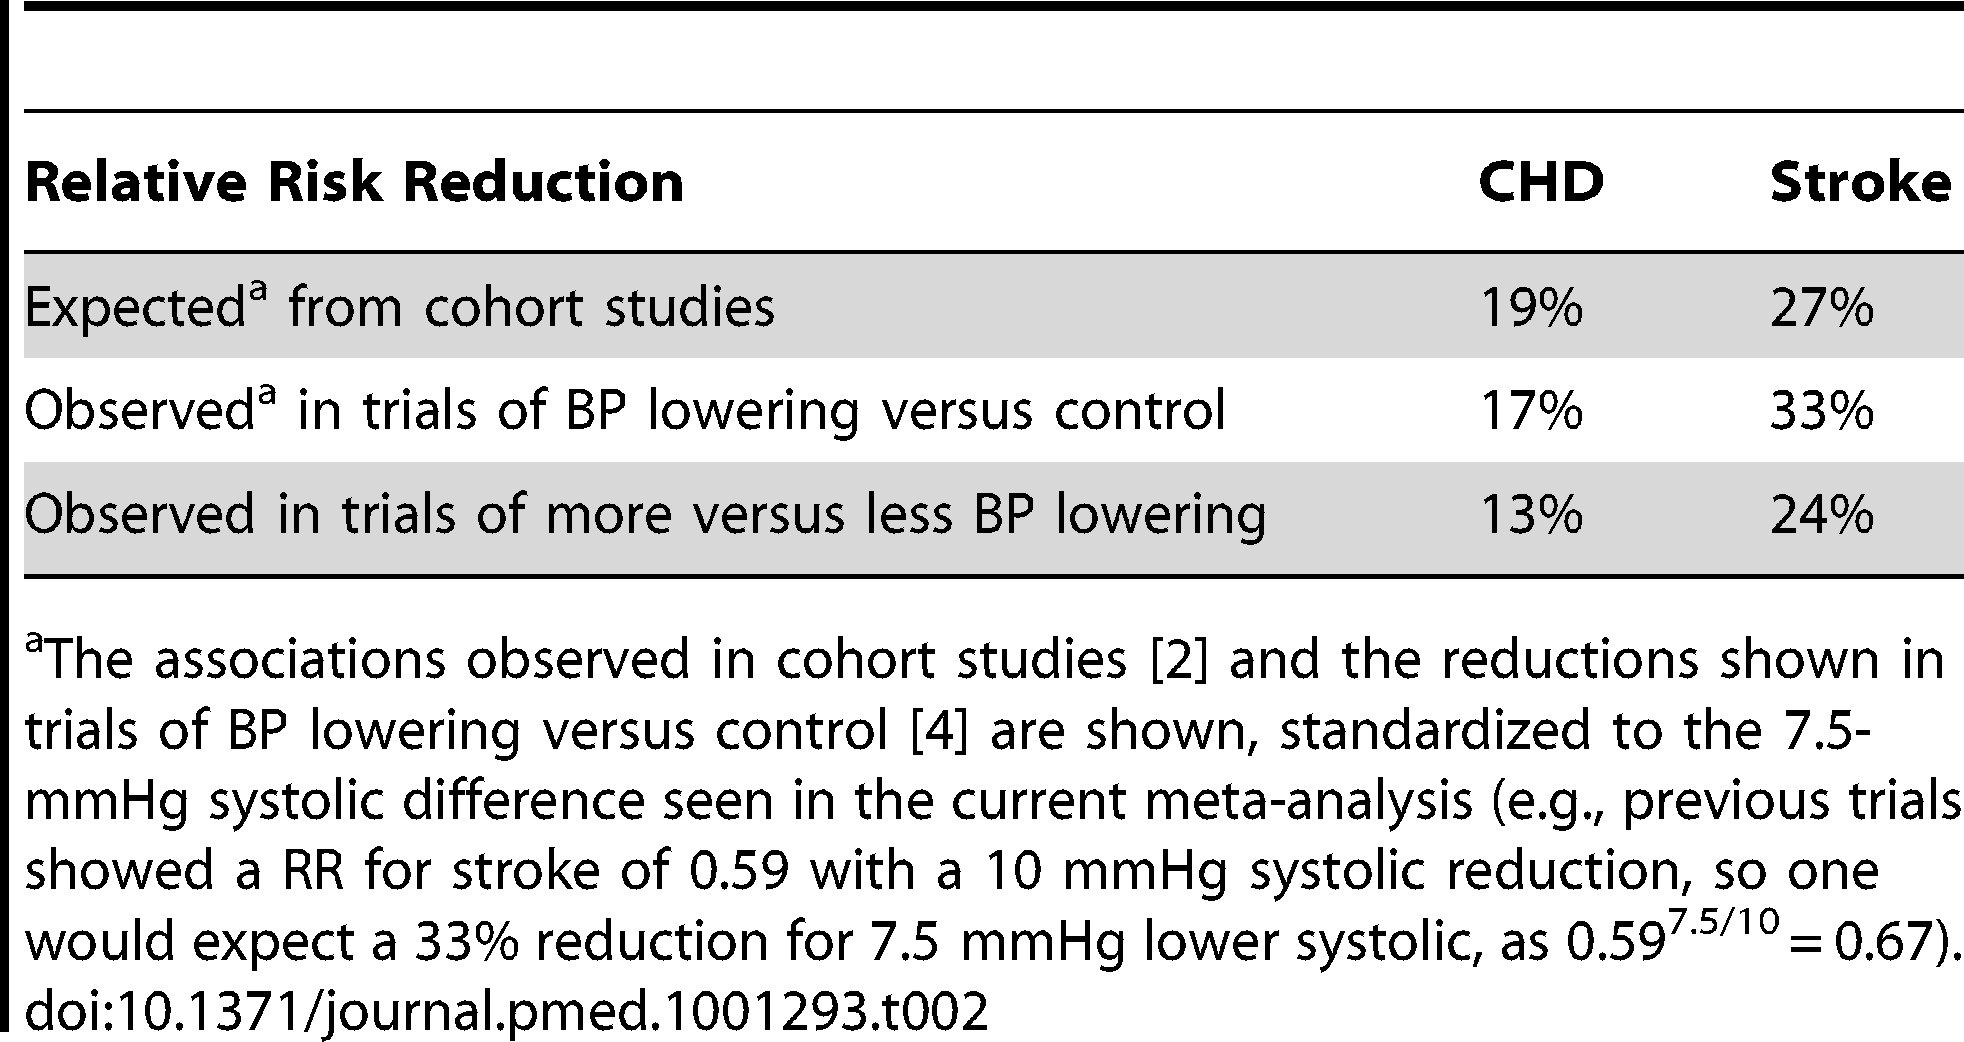 Comparison of expected and observed effects of a 7.5-mmHg systolic blood pressure difference on coronary heart disease, stroke, and heart failure.